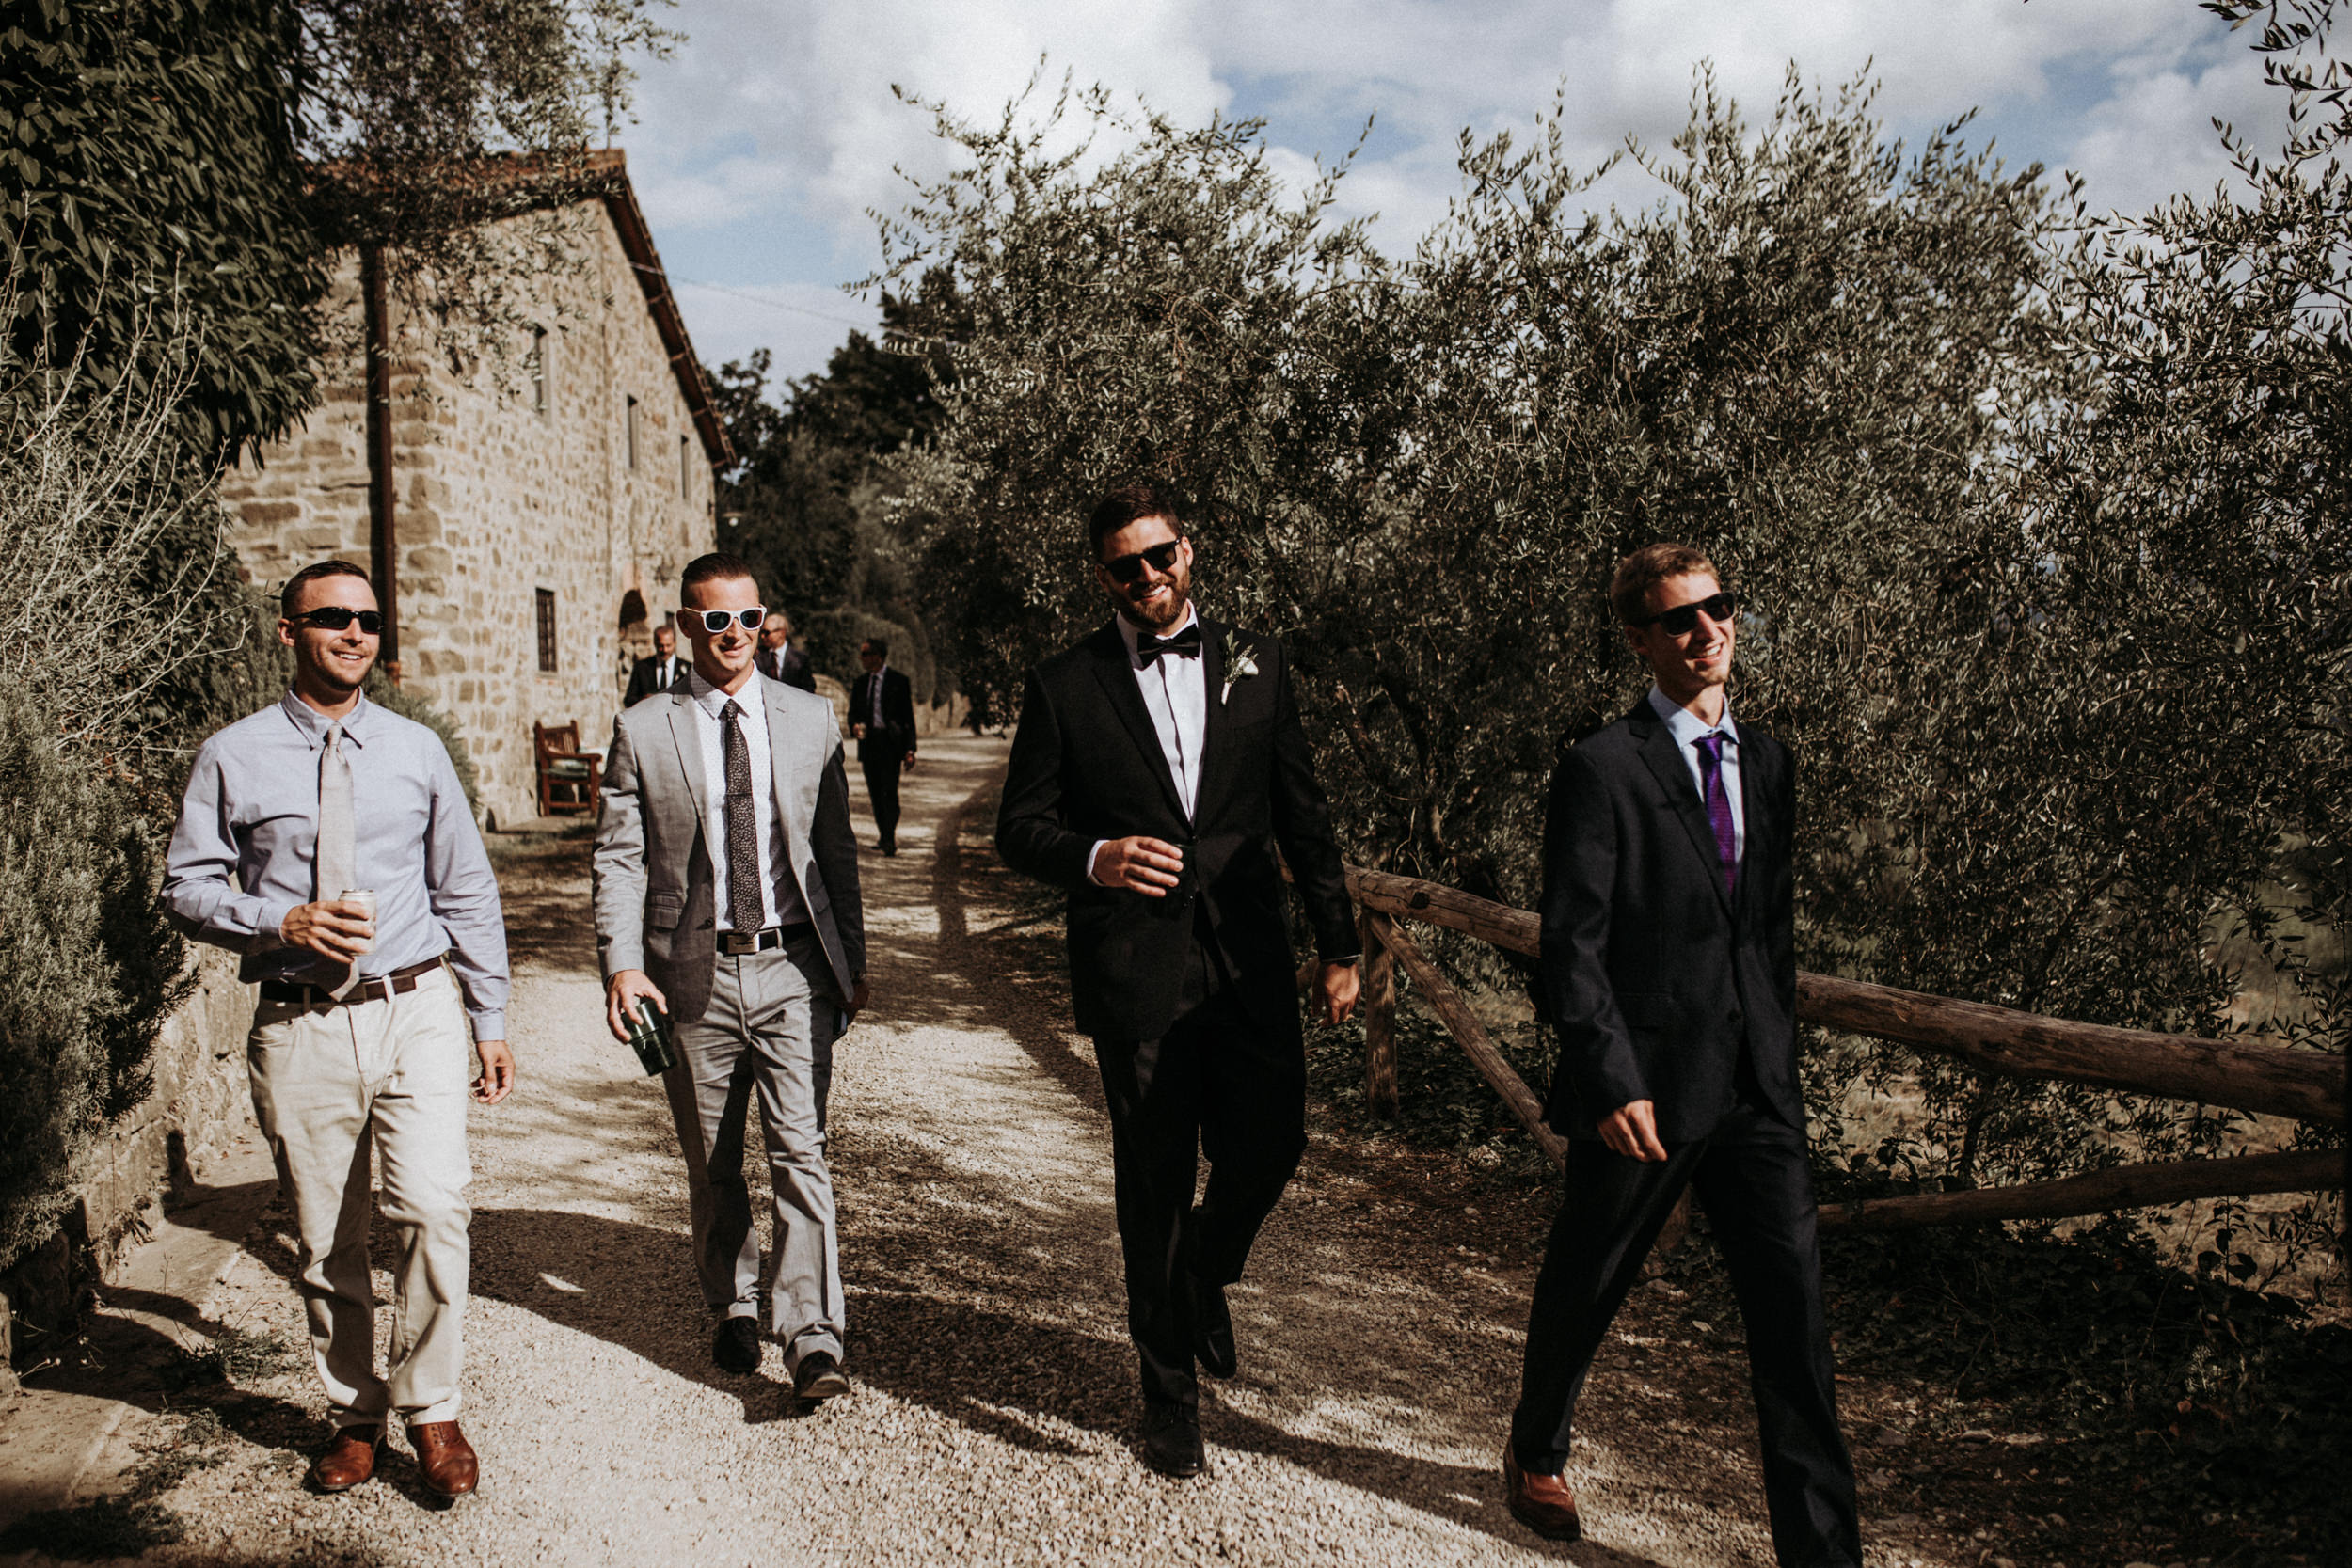 dm_photography_KW_Tuscanyweddingday_178